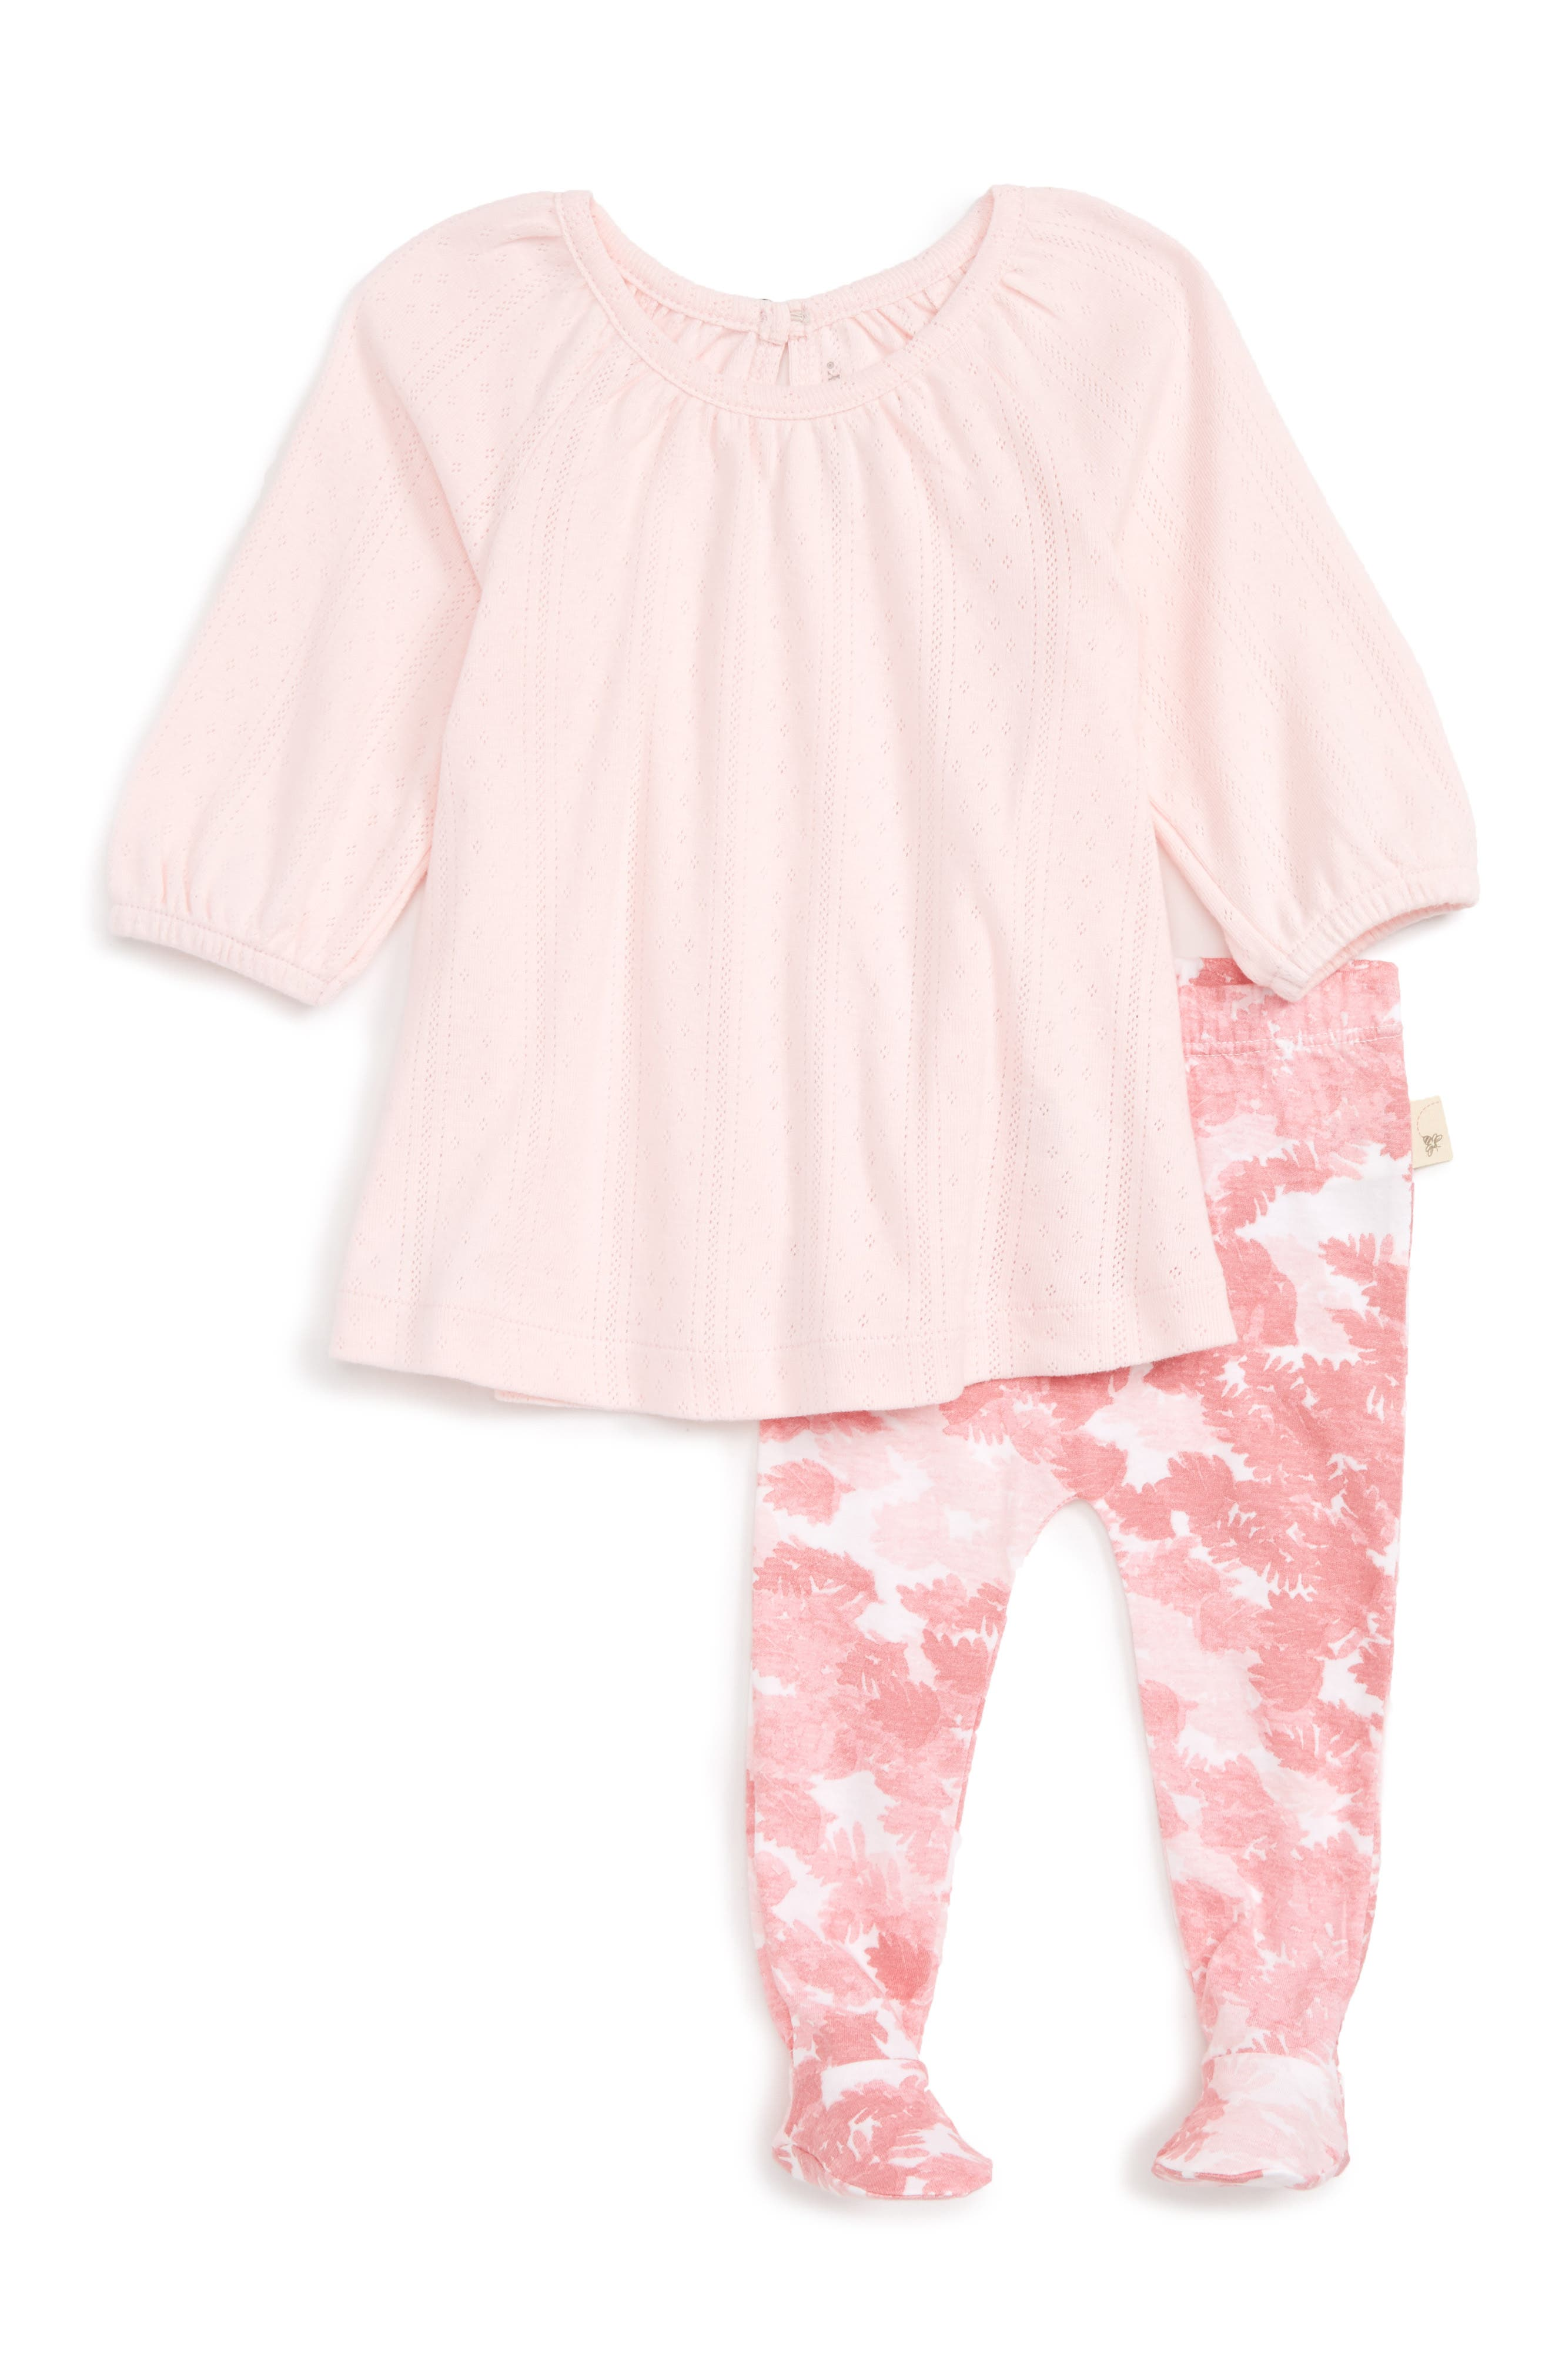 Pointelle Organic Cotton Dress & Footed Leggings Set,                         Main,                         color, Blossom